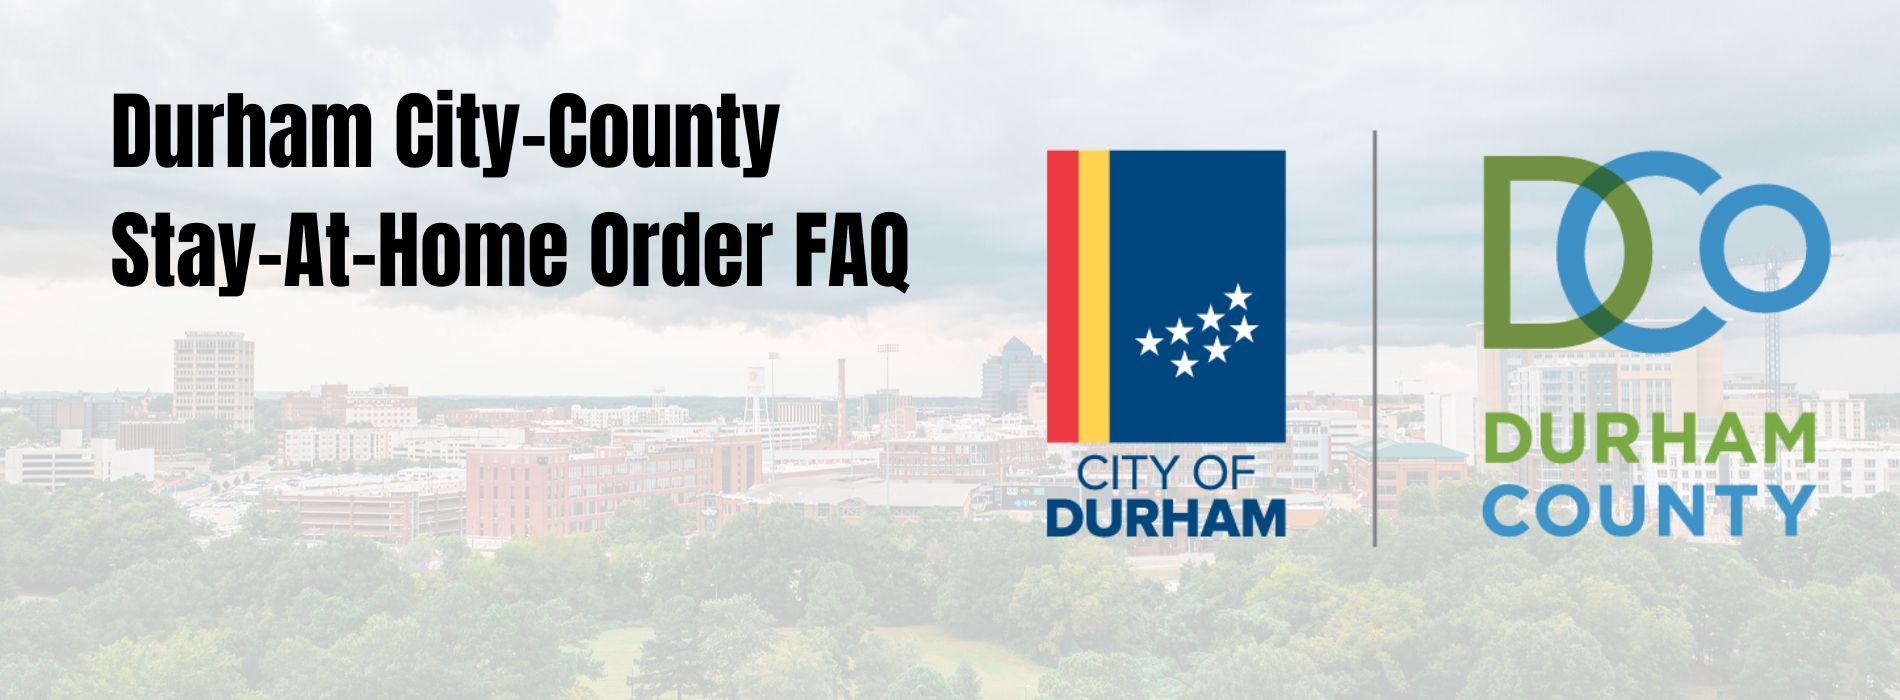 Copy of DURHAM COUNTY COVID-19 FAQ link